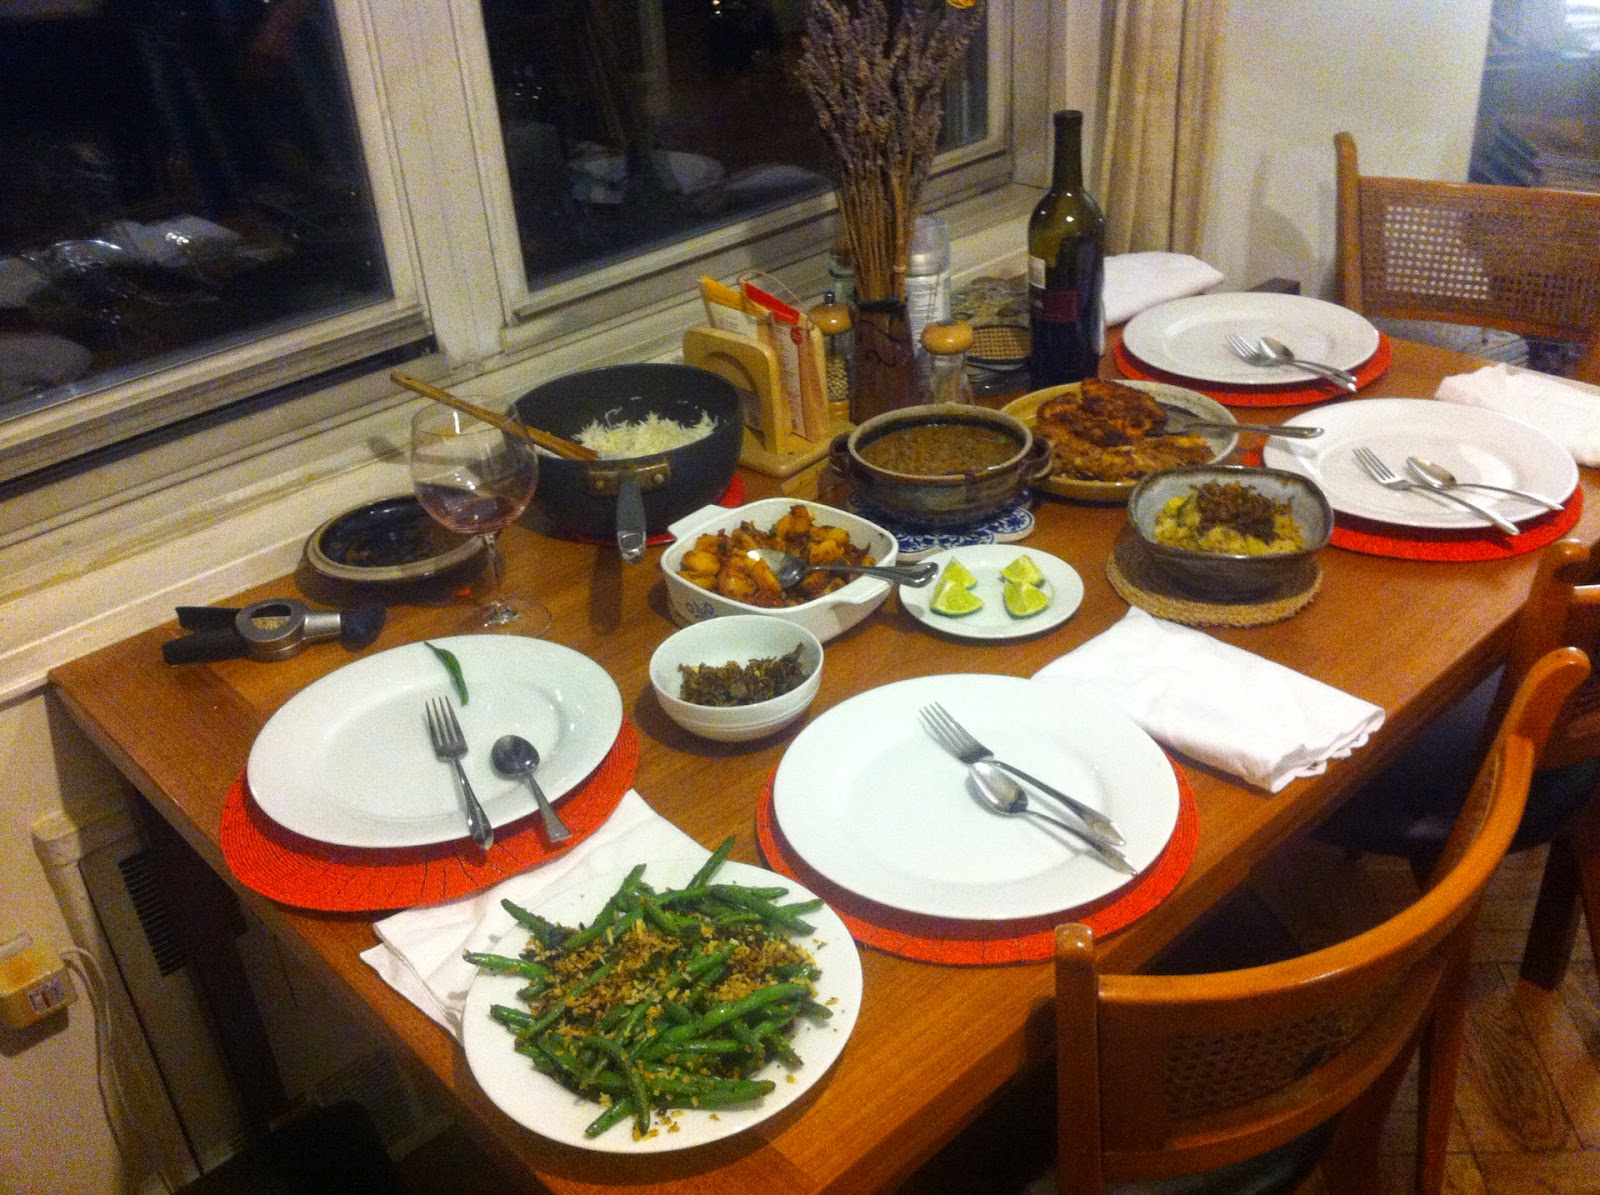 Family dinner table with food - Dinner With Rum And Pontus Bhaja Moong Dal Beans Poriyal Shamrock Green G T And More